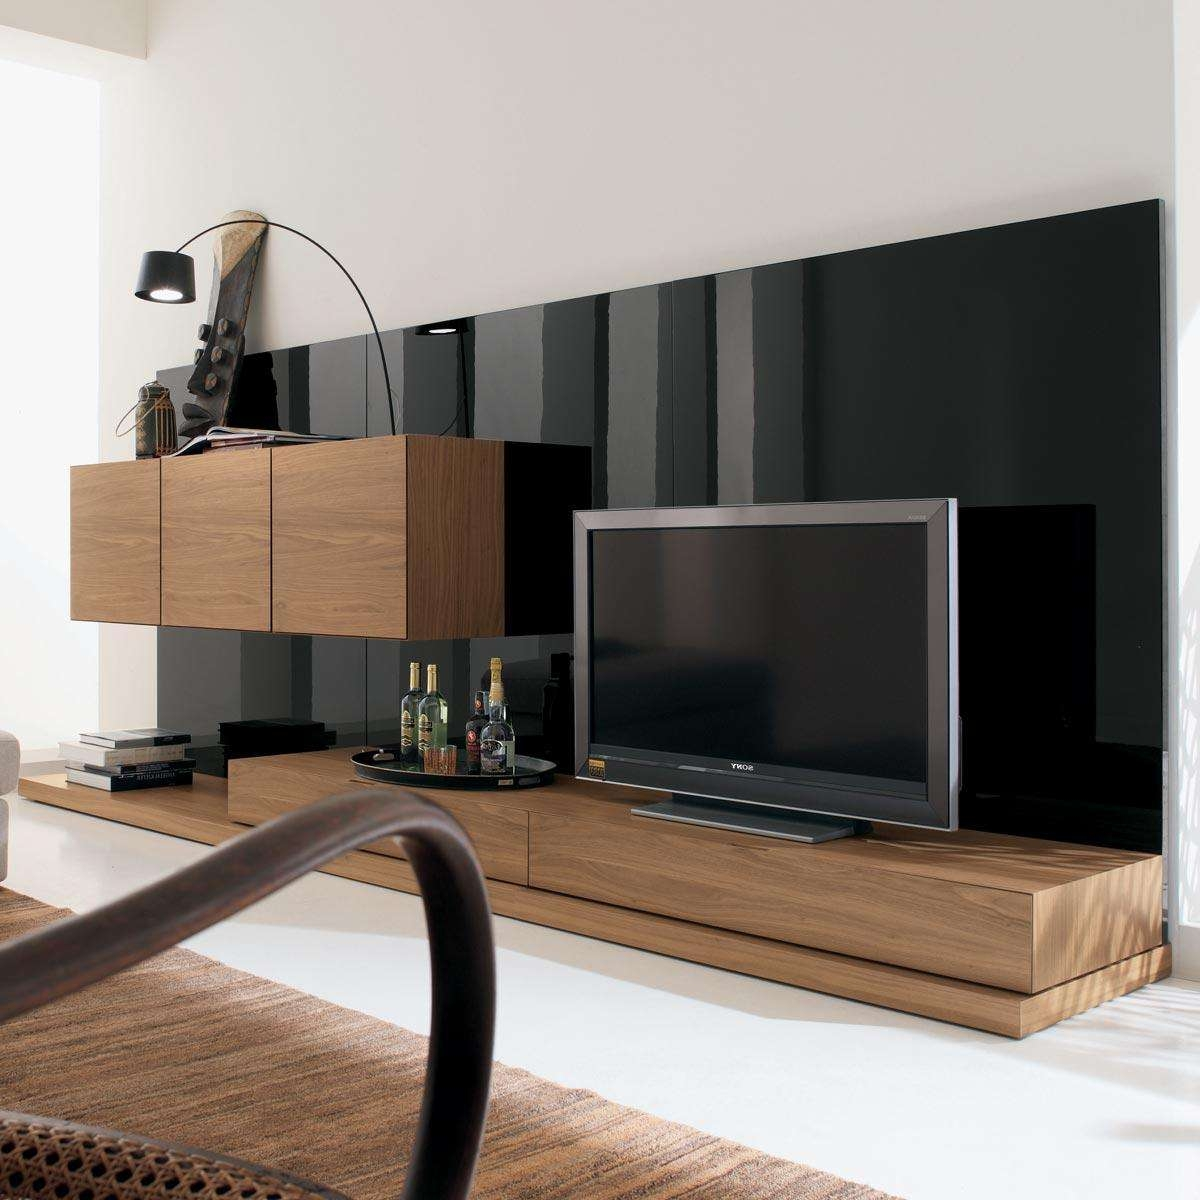 Modern Nature Wood Big Screen Tv Stand Wall Mounted Living Room Pertaining To Big Tv Stands Furniture (View 9 of 15)